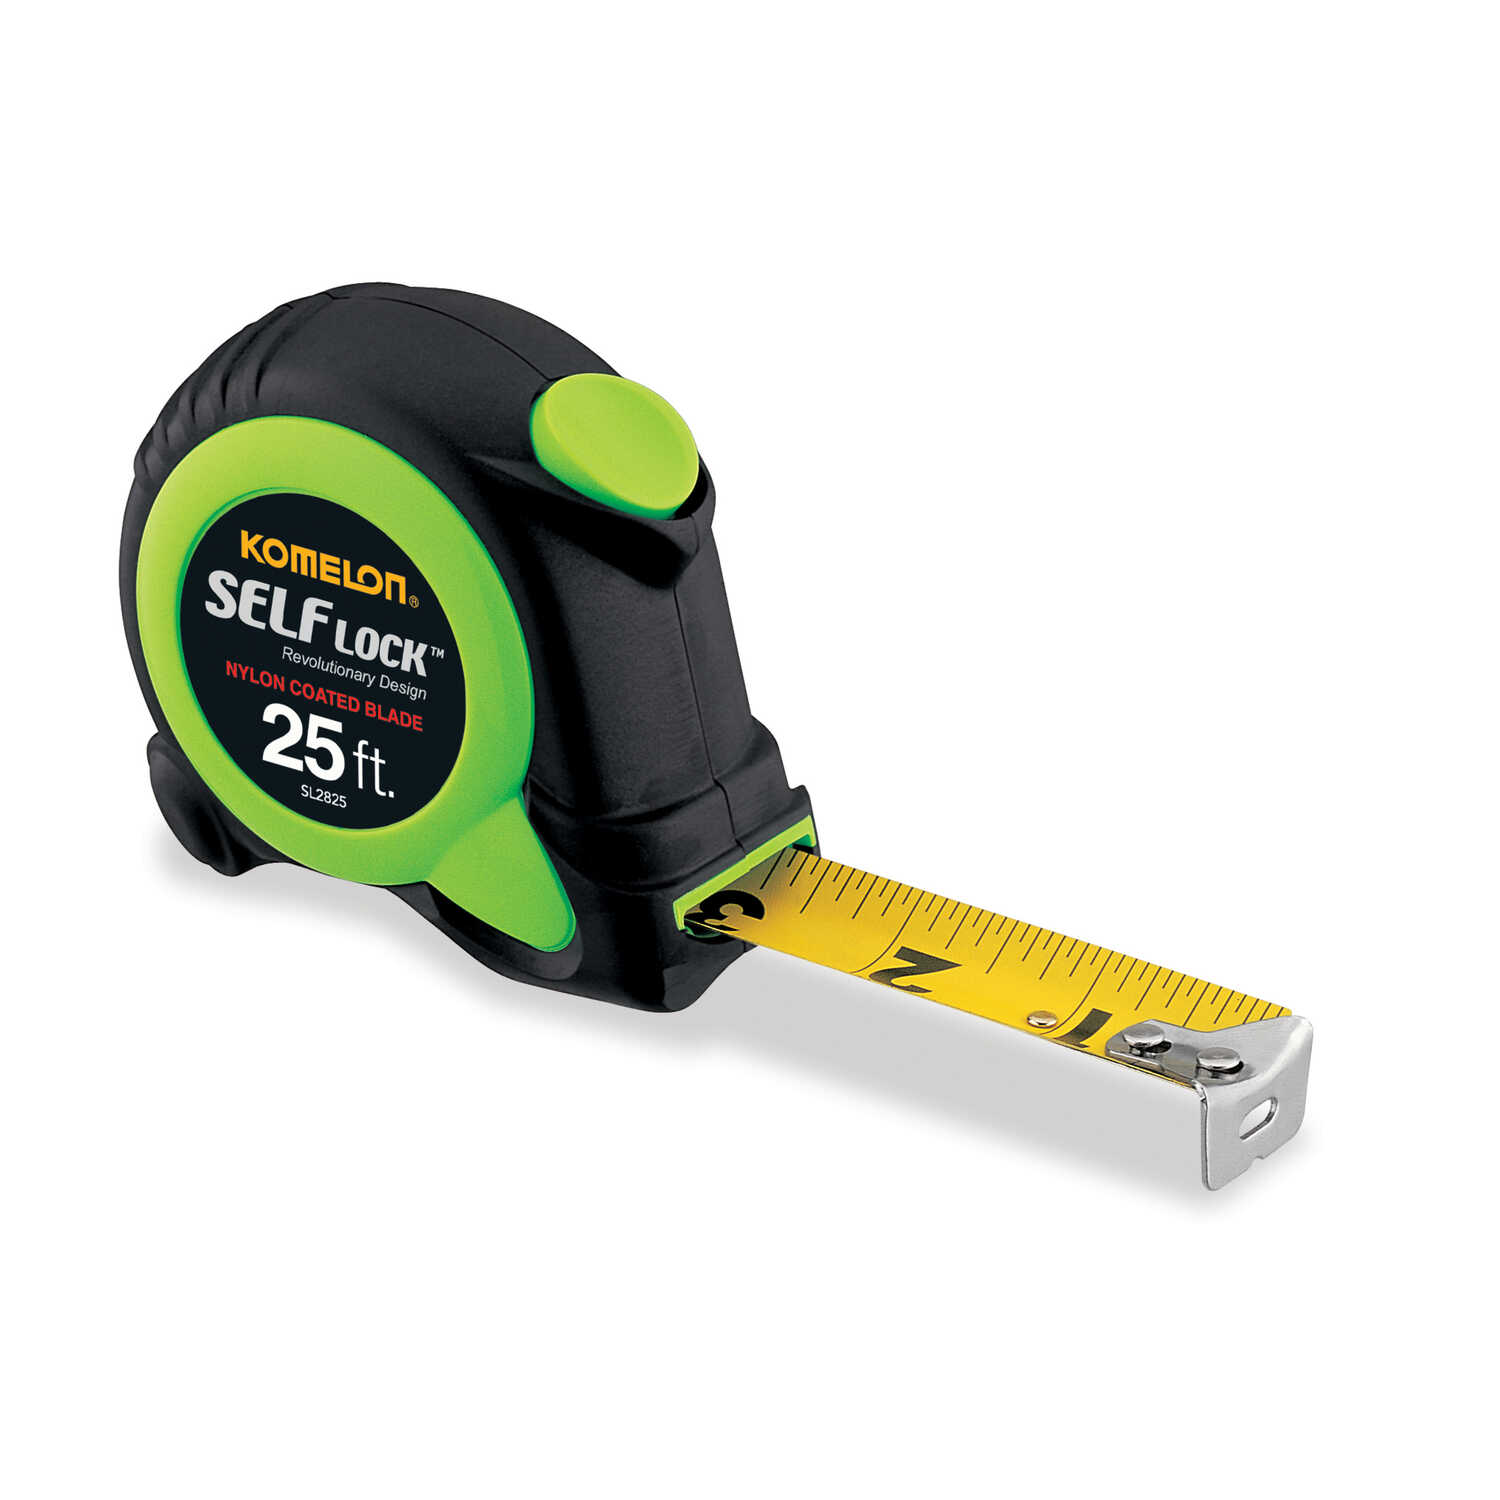 Komelon  Self Lock  25 ft. L x 1 in. W Auto Lock Tape Measure  Green  1 pk